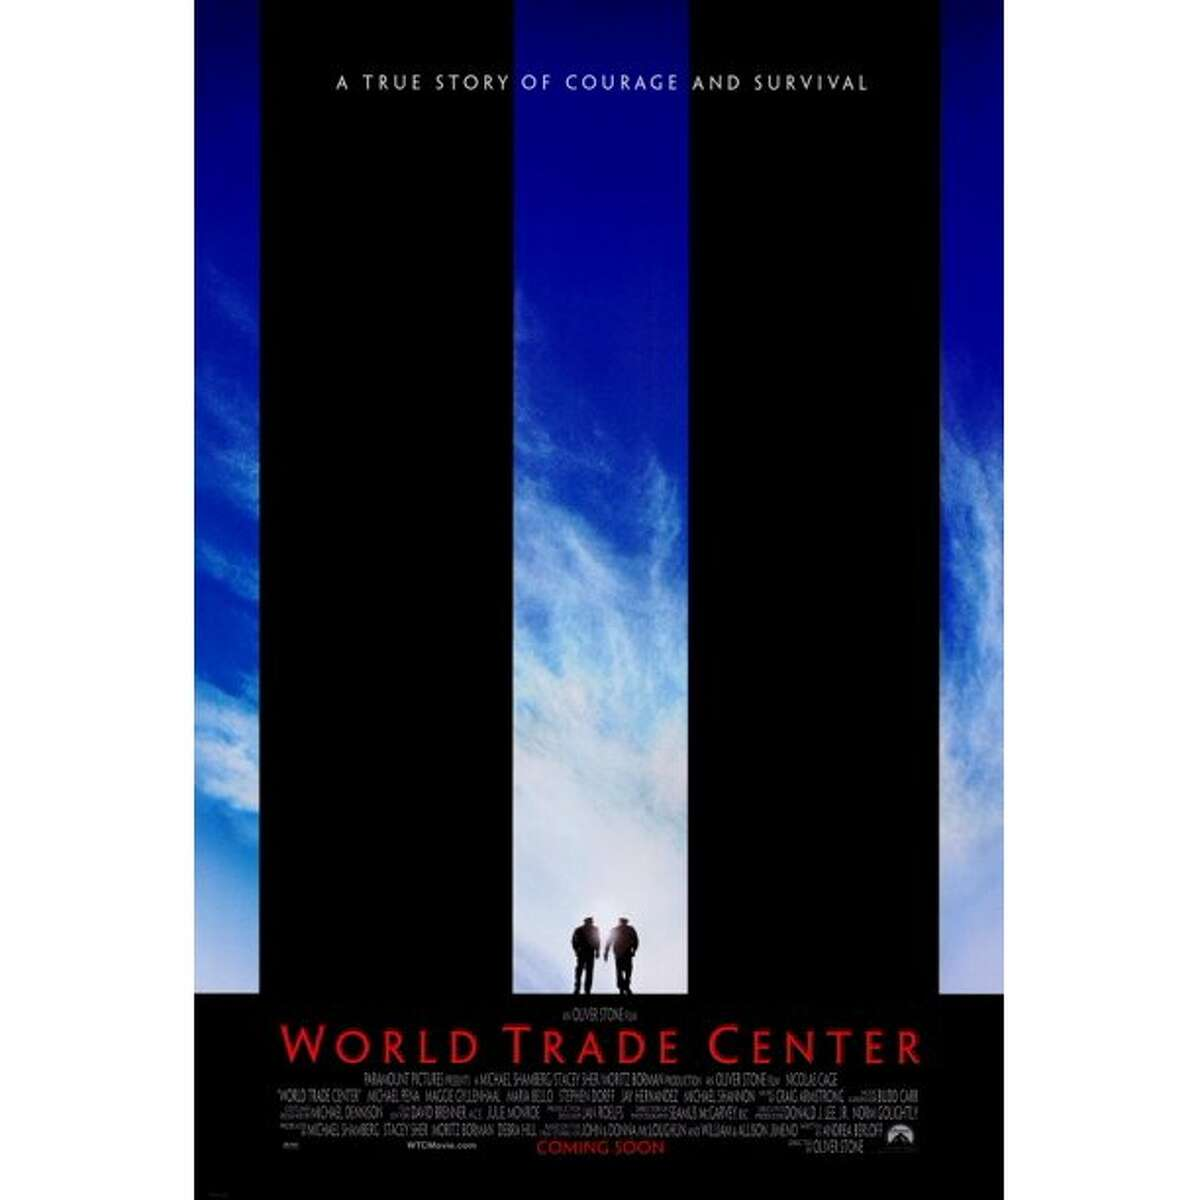 """The theatrical release poster for Oliver Stone's 2006 docudrama """"World Trade Center,"""" starring Nicolas Cage and Michael Peña."""